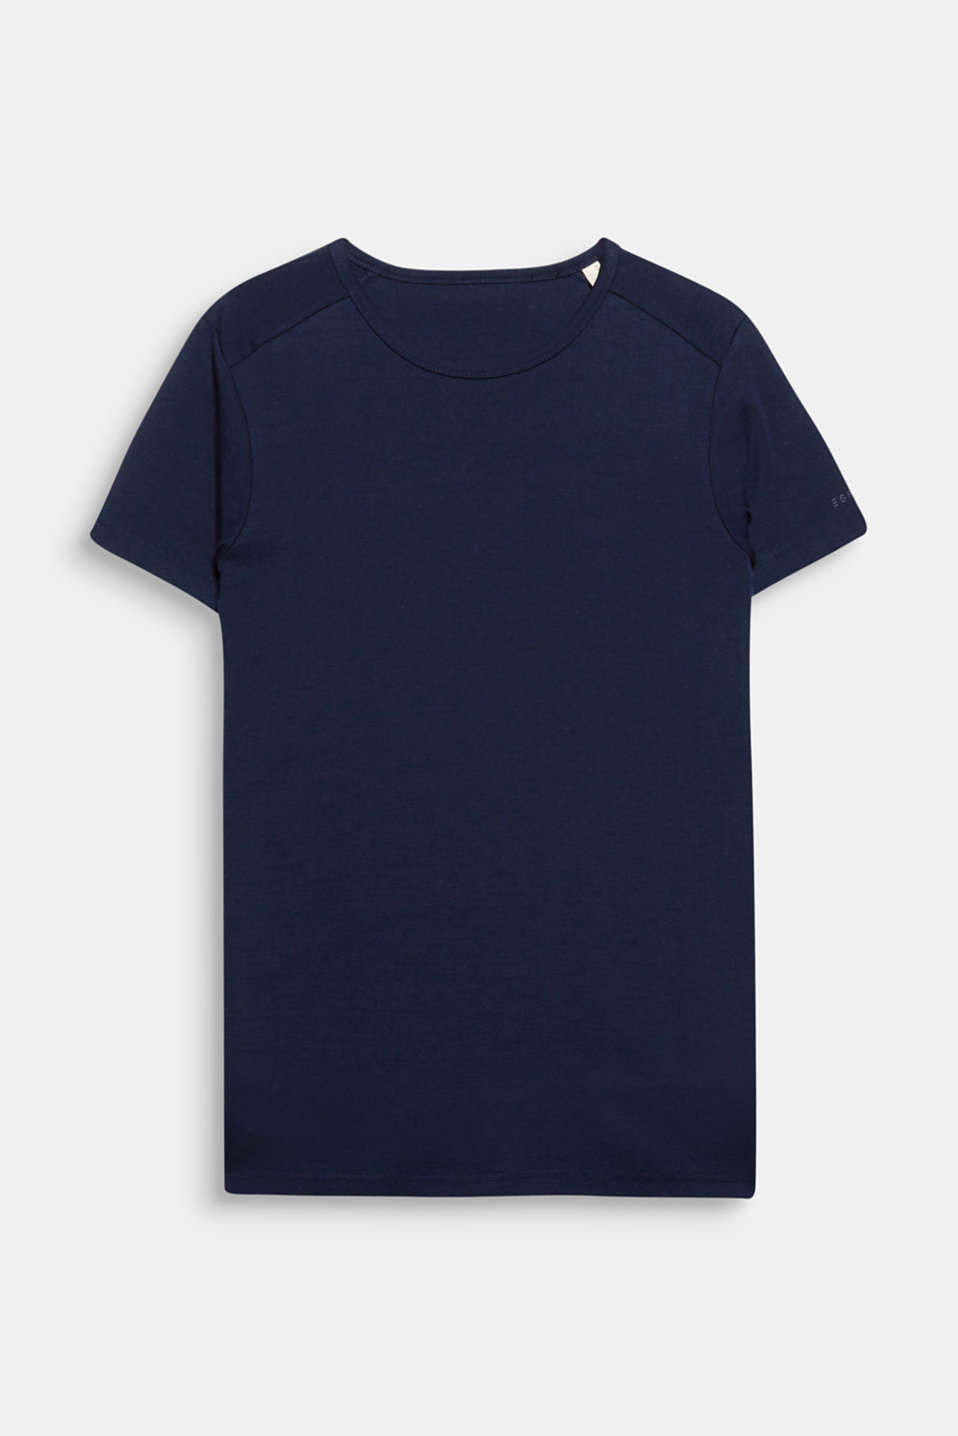 Basis-T-shirt af smalt rib